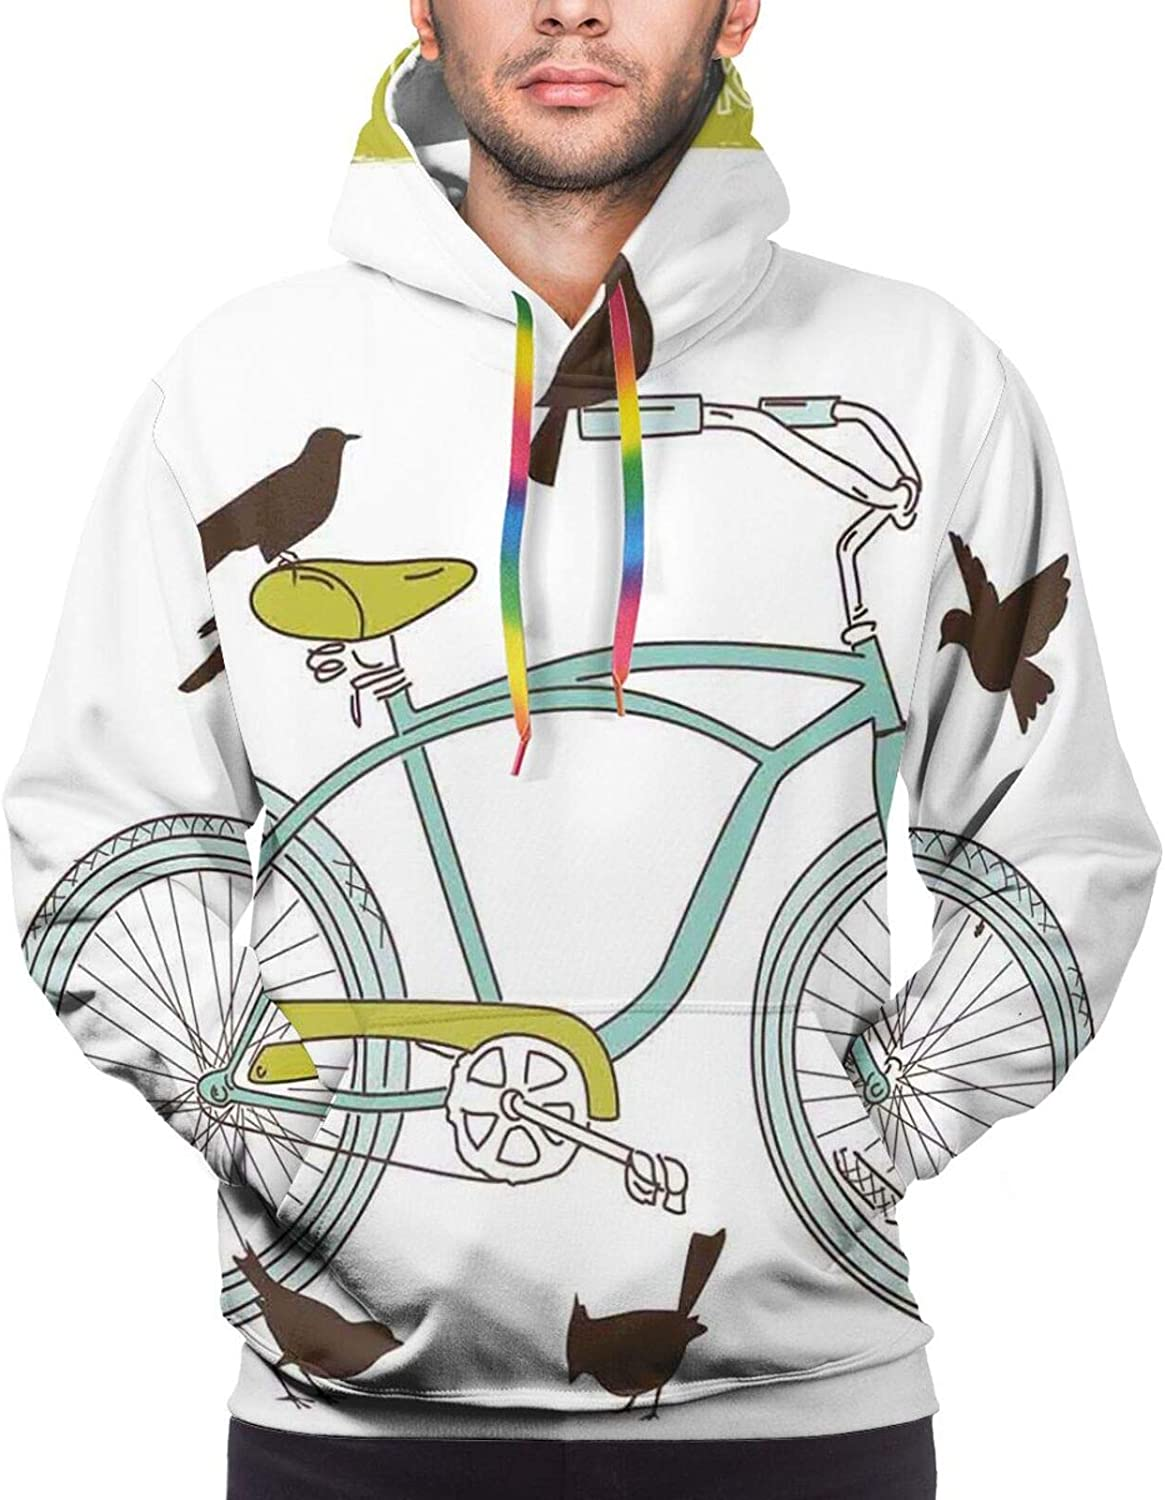 Men's Hoodies Sweatshirts,I Love Math Theme Objects Heart Icon Calculator Compass and Ruler